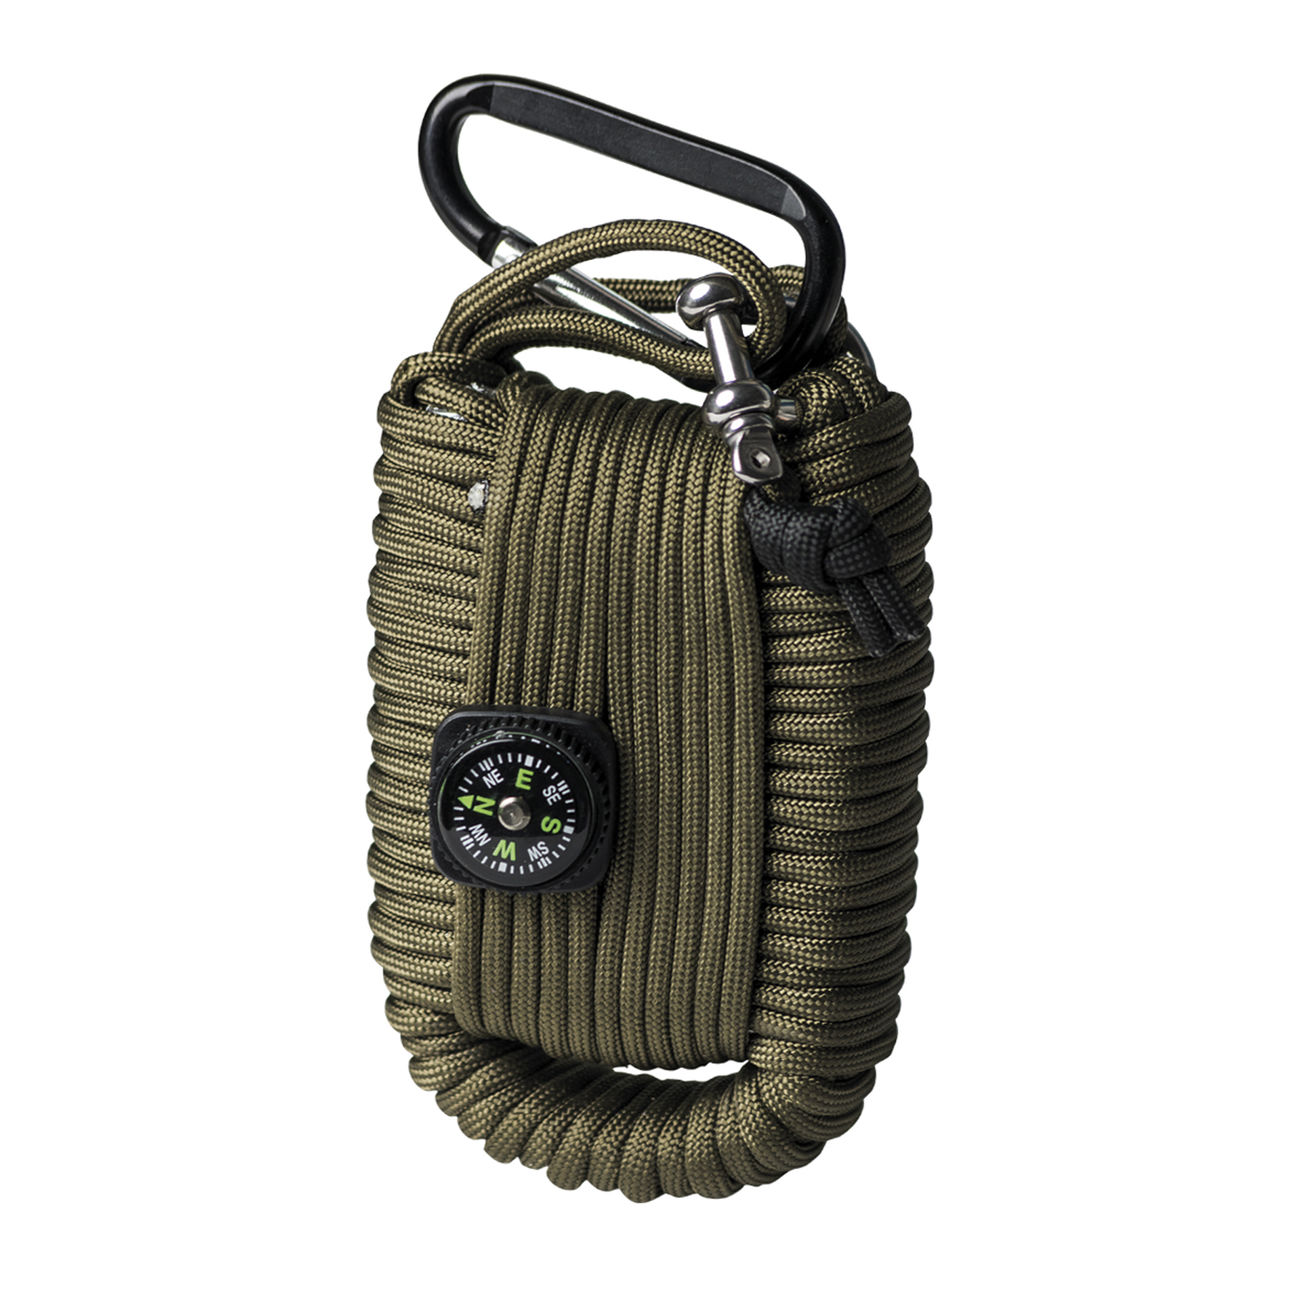 Mil-Tec Paracord Survival Kit large oliv 2